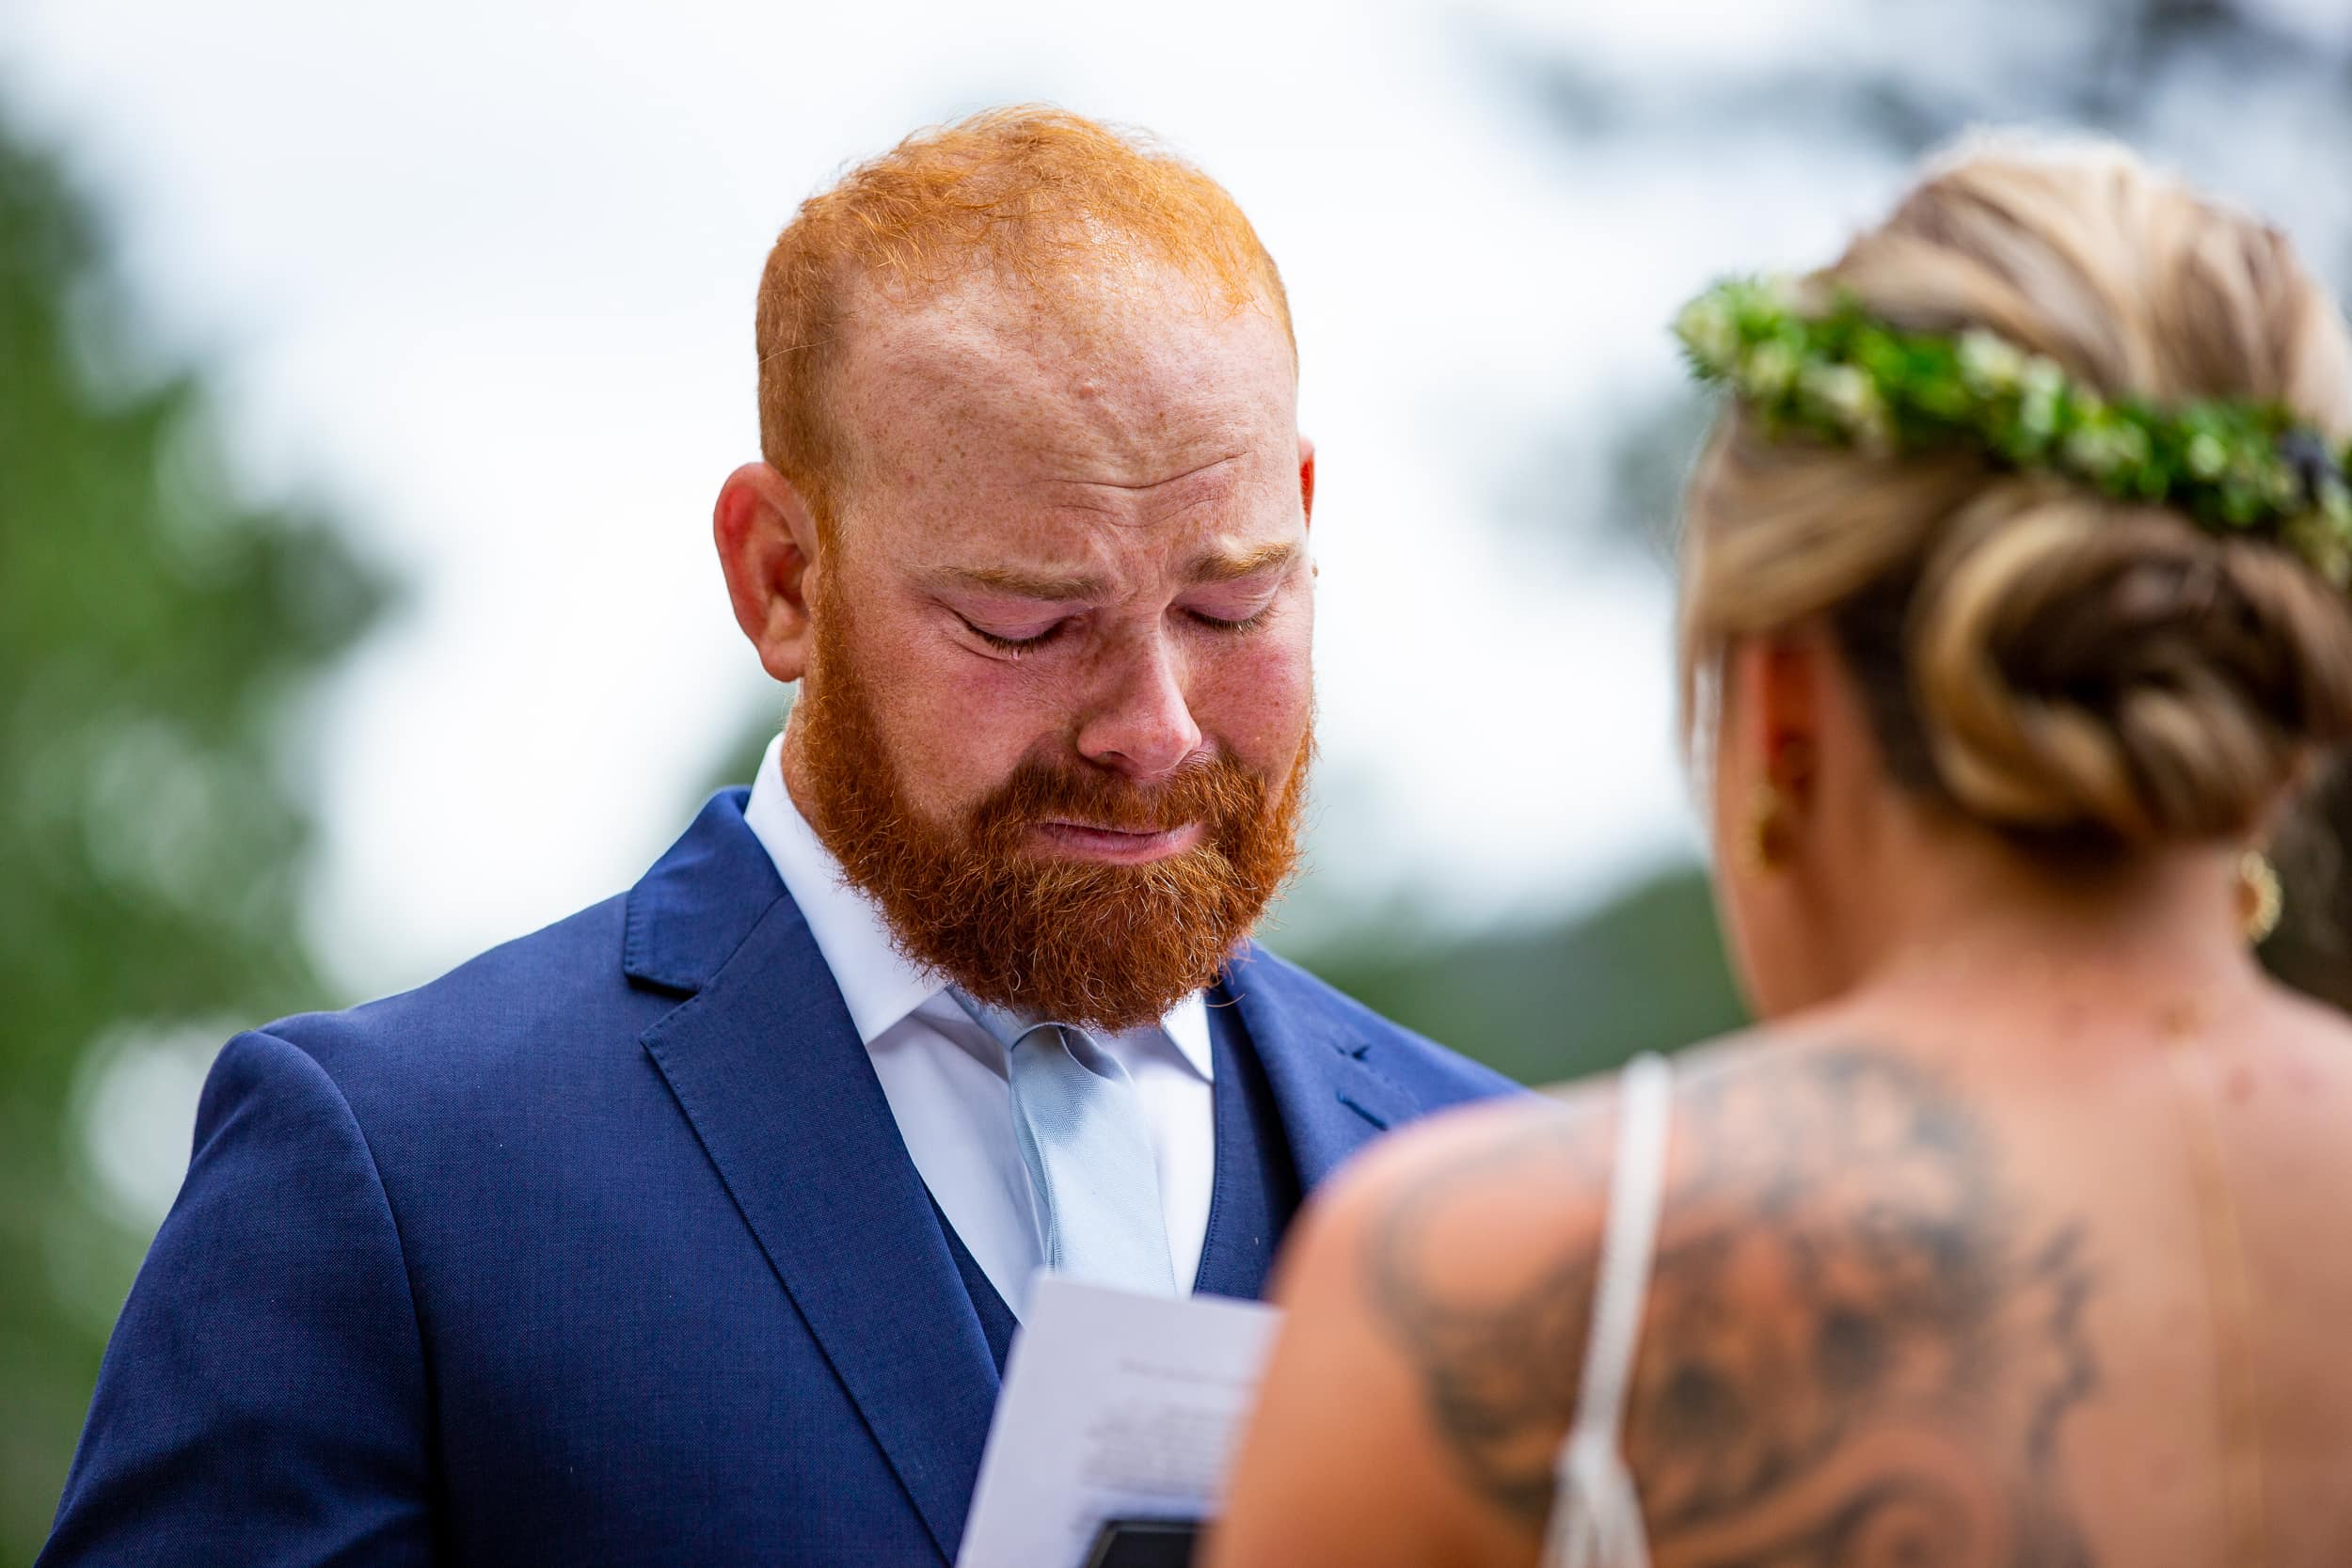 Kevin gets emotional as he reads his vows to Jamie in Estes Park, Colorado.